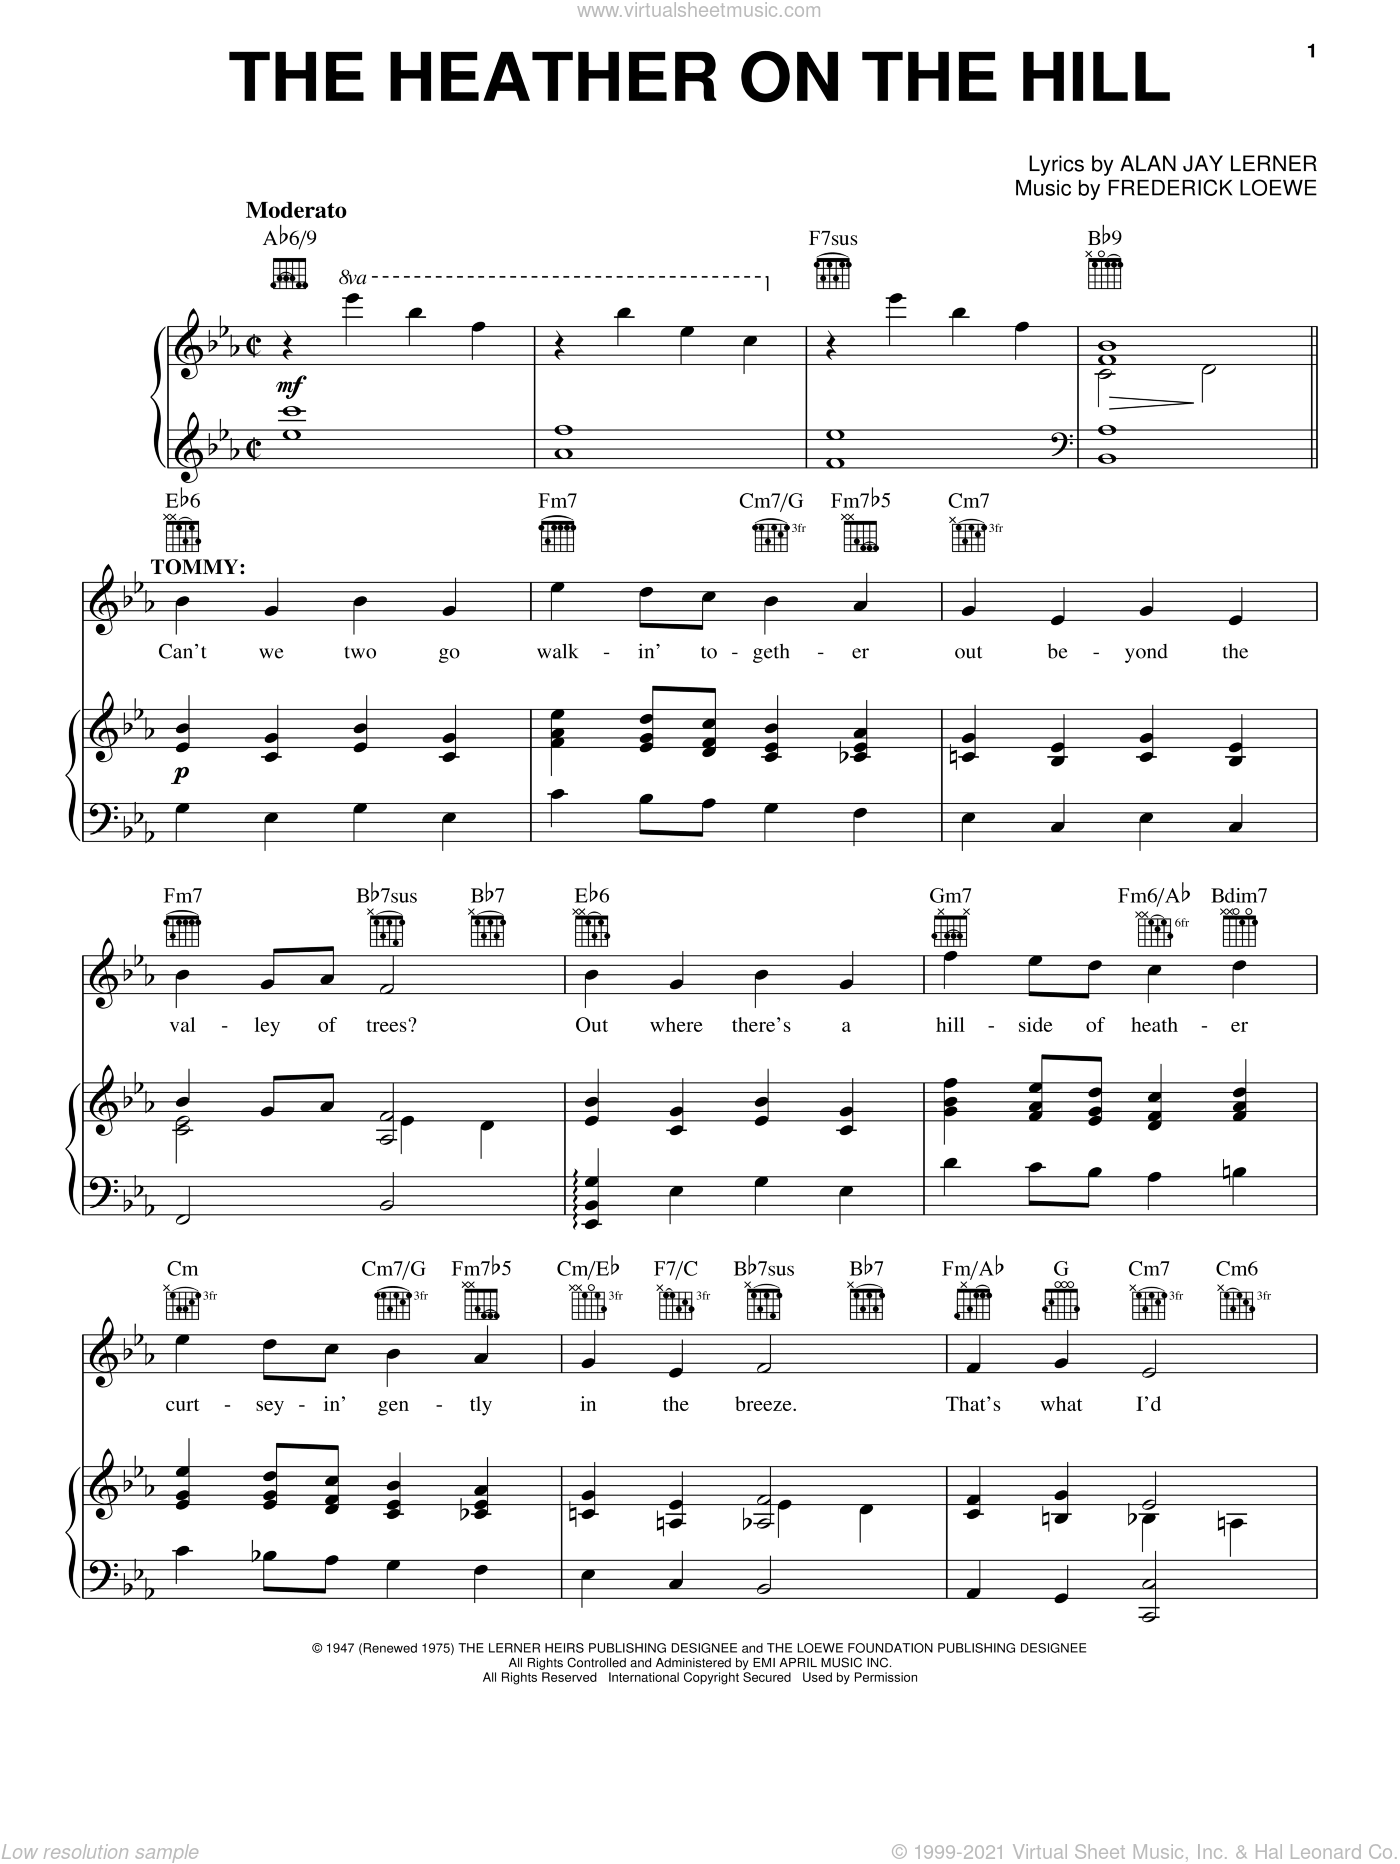 The Heather On The Hill sheet music for voice, piano or guitar by Lerner & Loewe, Brigadoon (Musical), Alan Jay Lerner and Frederick Loewe, intermediate skill level